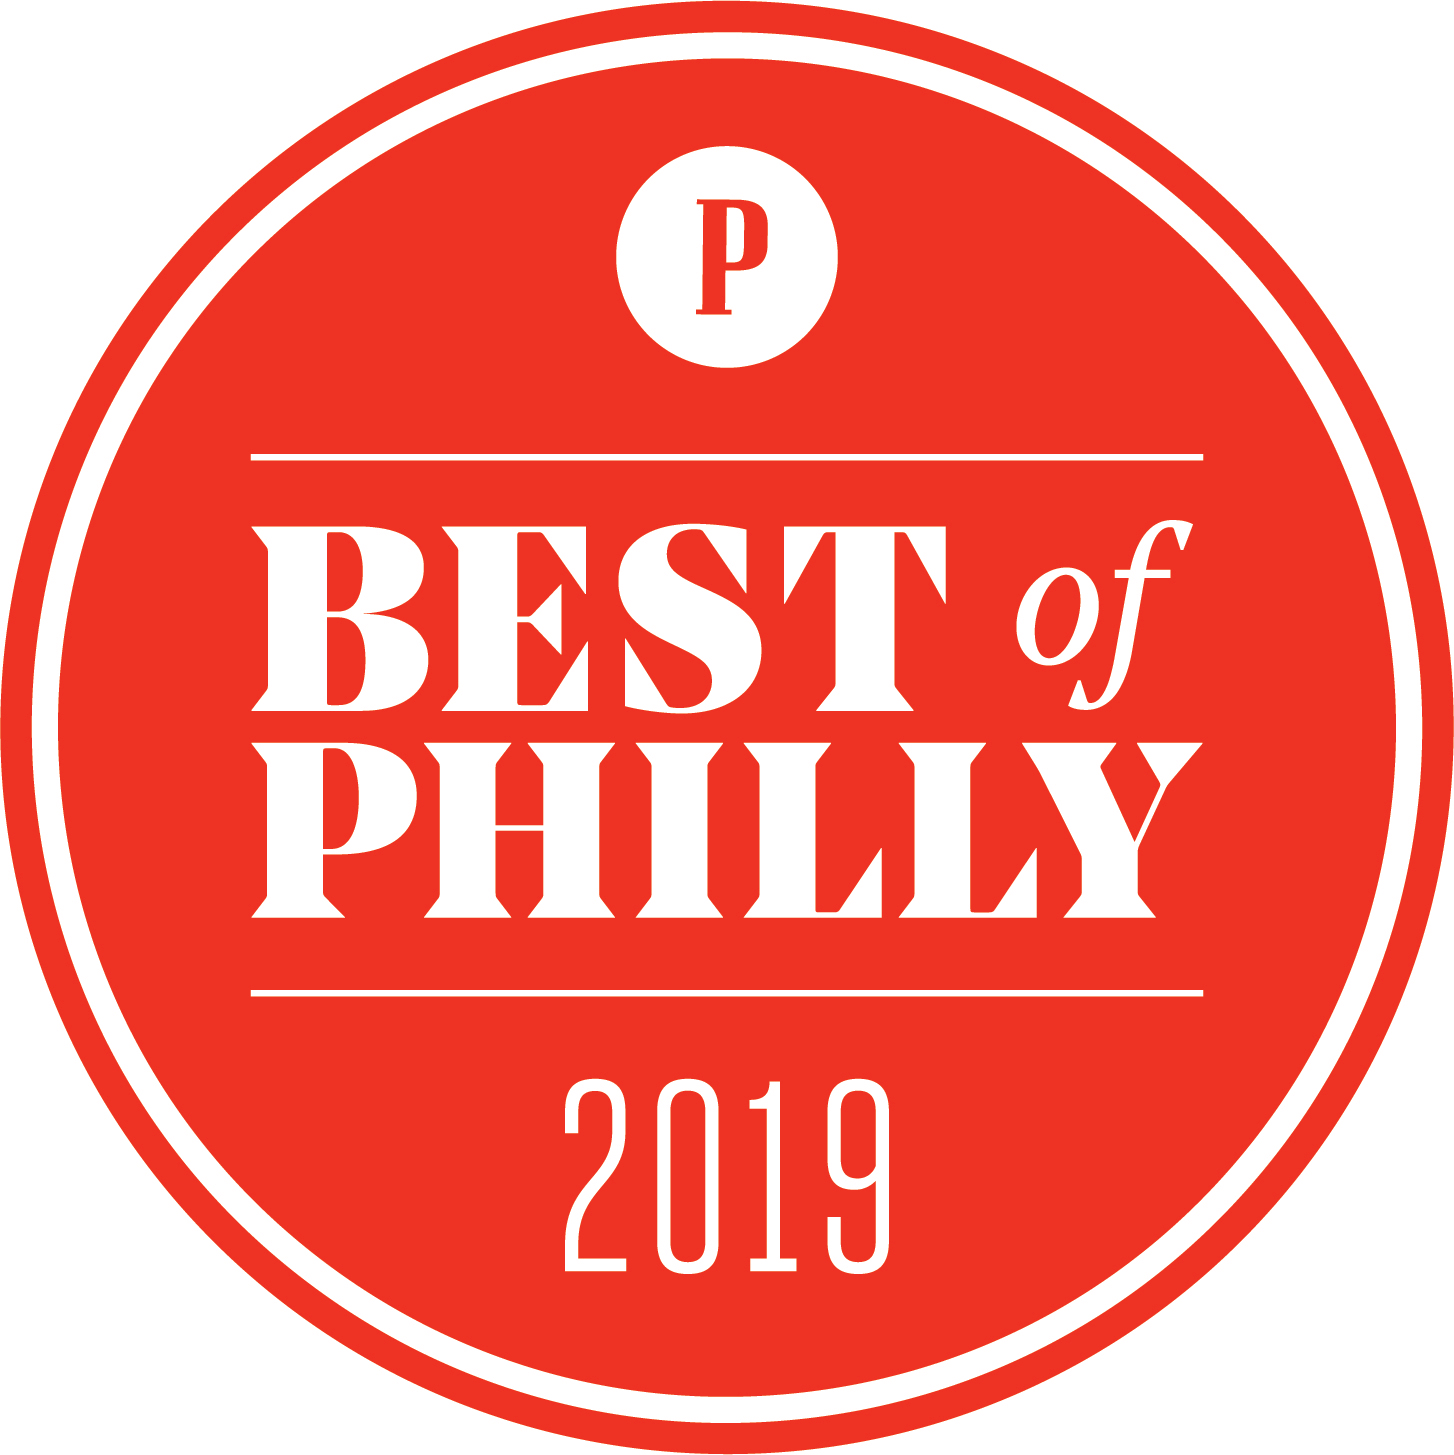 Thank You!  - Thank you, Philadelphia Magazine for recognizing H.O.M. as Best of Philly: Shopping and Style as the Best Place to Find Celestial Jewelry. We are proud of our unique assortment and our talented local artists!